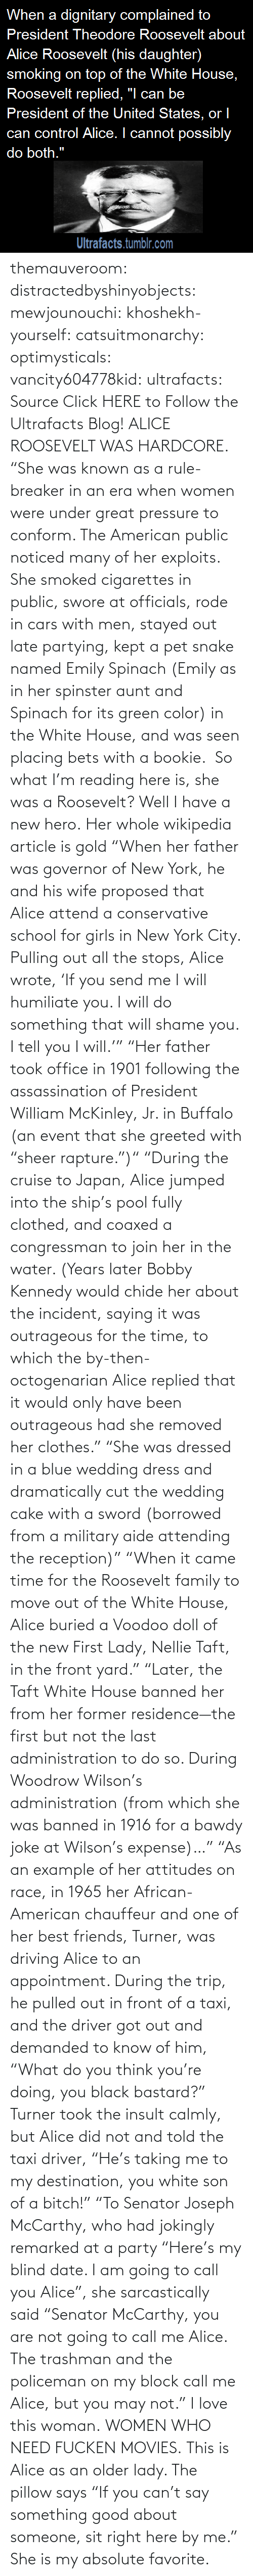 "kennedy: themauveroom: distractedbyshinyobjects:  mewjounouchi:  khoshekh-yourself:  catsuitmonarchy:  optimysticals:  vancity604778kid:  ultrafacts:     Source Click HERE to Follow the Ultrafacts Blog!     ALICE ROOSEVELT WAS HARDCORE. ""She was known as a rule-breaker in an era when women were under great pressure to conform. The American public noticed many of her exploits. She smoked cigarettes in public, swore at officials, rode in cars with men, stayed out late partying, kept a pet snake named Emily Spinach (Emily as in her spinster aunt and Spinach for its green color) in the White House, and was seen placing bets with a bookie.    So what I'm reading here is, she was a Roosevelt?  Well I have a new hero.  Her whole wikipedia article is gold ""When her father was governor of New York, he and his wife proposed that Alice attend a conservative school for girls in New York City. Pulling out all the stops, Alice wrote, 'If you send me I will humiliate you. I will do something that will shame you. I tell you I will.'"" ""Her father took office in 1901 following the assassination of President William McKinley, Jr. in Buffalo (an event that she greeted with ""sheer rapture."")"" ""During the cruise to Japan, Alice jumped into the ship's pool fully clothed, and coaxed a congressman to join her in the water. (Years later Bobby Kennedy would chide her about the incident, saying it was outrageous for the time, to which the by-then-octogenarian Alice replied that it would only have been outrageous had she removed her clothes."" ""She was dressed in a blue wedding dress and dramatically cut the wedding cake with a sword (borrowed from a military aide attending the reception)"" ""When it came time for the Roosevelt family to move out of the White House, Alice buried a Voodoo doll of the new First Lady, Nellie Taft, in the front yard."" ""Later, the Taft White House banned her from her former residence—the first but not the last administration to do so. During Woodrow Wilson's administration (from which she was banned in 1916 for a bawdy joke at Wilson's expense)…"" ""As an example of her attitudes on race, in 1965 her African-American chauffeur and one of her best friends, Turner, was driving Alice to an appointment. During the trip, he pulled out in front of a taxi, and the driver got out and demanded to know of him, ""What do you think you're doing, you black bastard?"" Turner took the insult calmly, but Alice did not and told the taxi driver, ""He's taking me to my destination, you white son of a bitch!"" ""To Senator Joseph McCarthy, who had jokingly remarked at a party ""Here's my blind date. I am going to call you Alice"", she sarcastically said ""Senator McCarthy, you are not going to call me Alice. The trashman and the policeman on my block call me Alice, but you may not.""  I love this woman.  WOMEN WHO NEED FUCKEN MOVIES.   This is Alice as an older lady. The pillow says ""If you can't say something good about someone, sit right here by me.""  She is my absolute favorite."